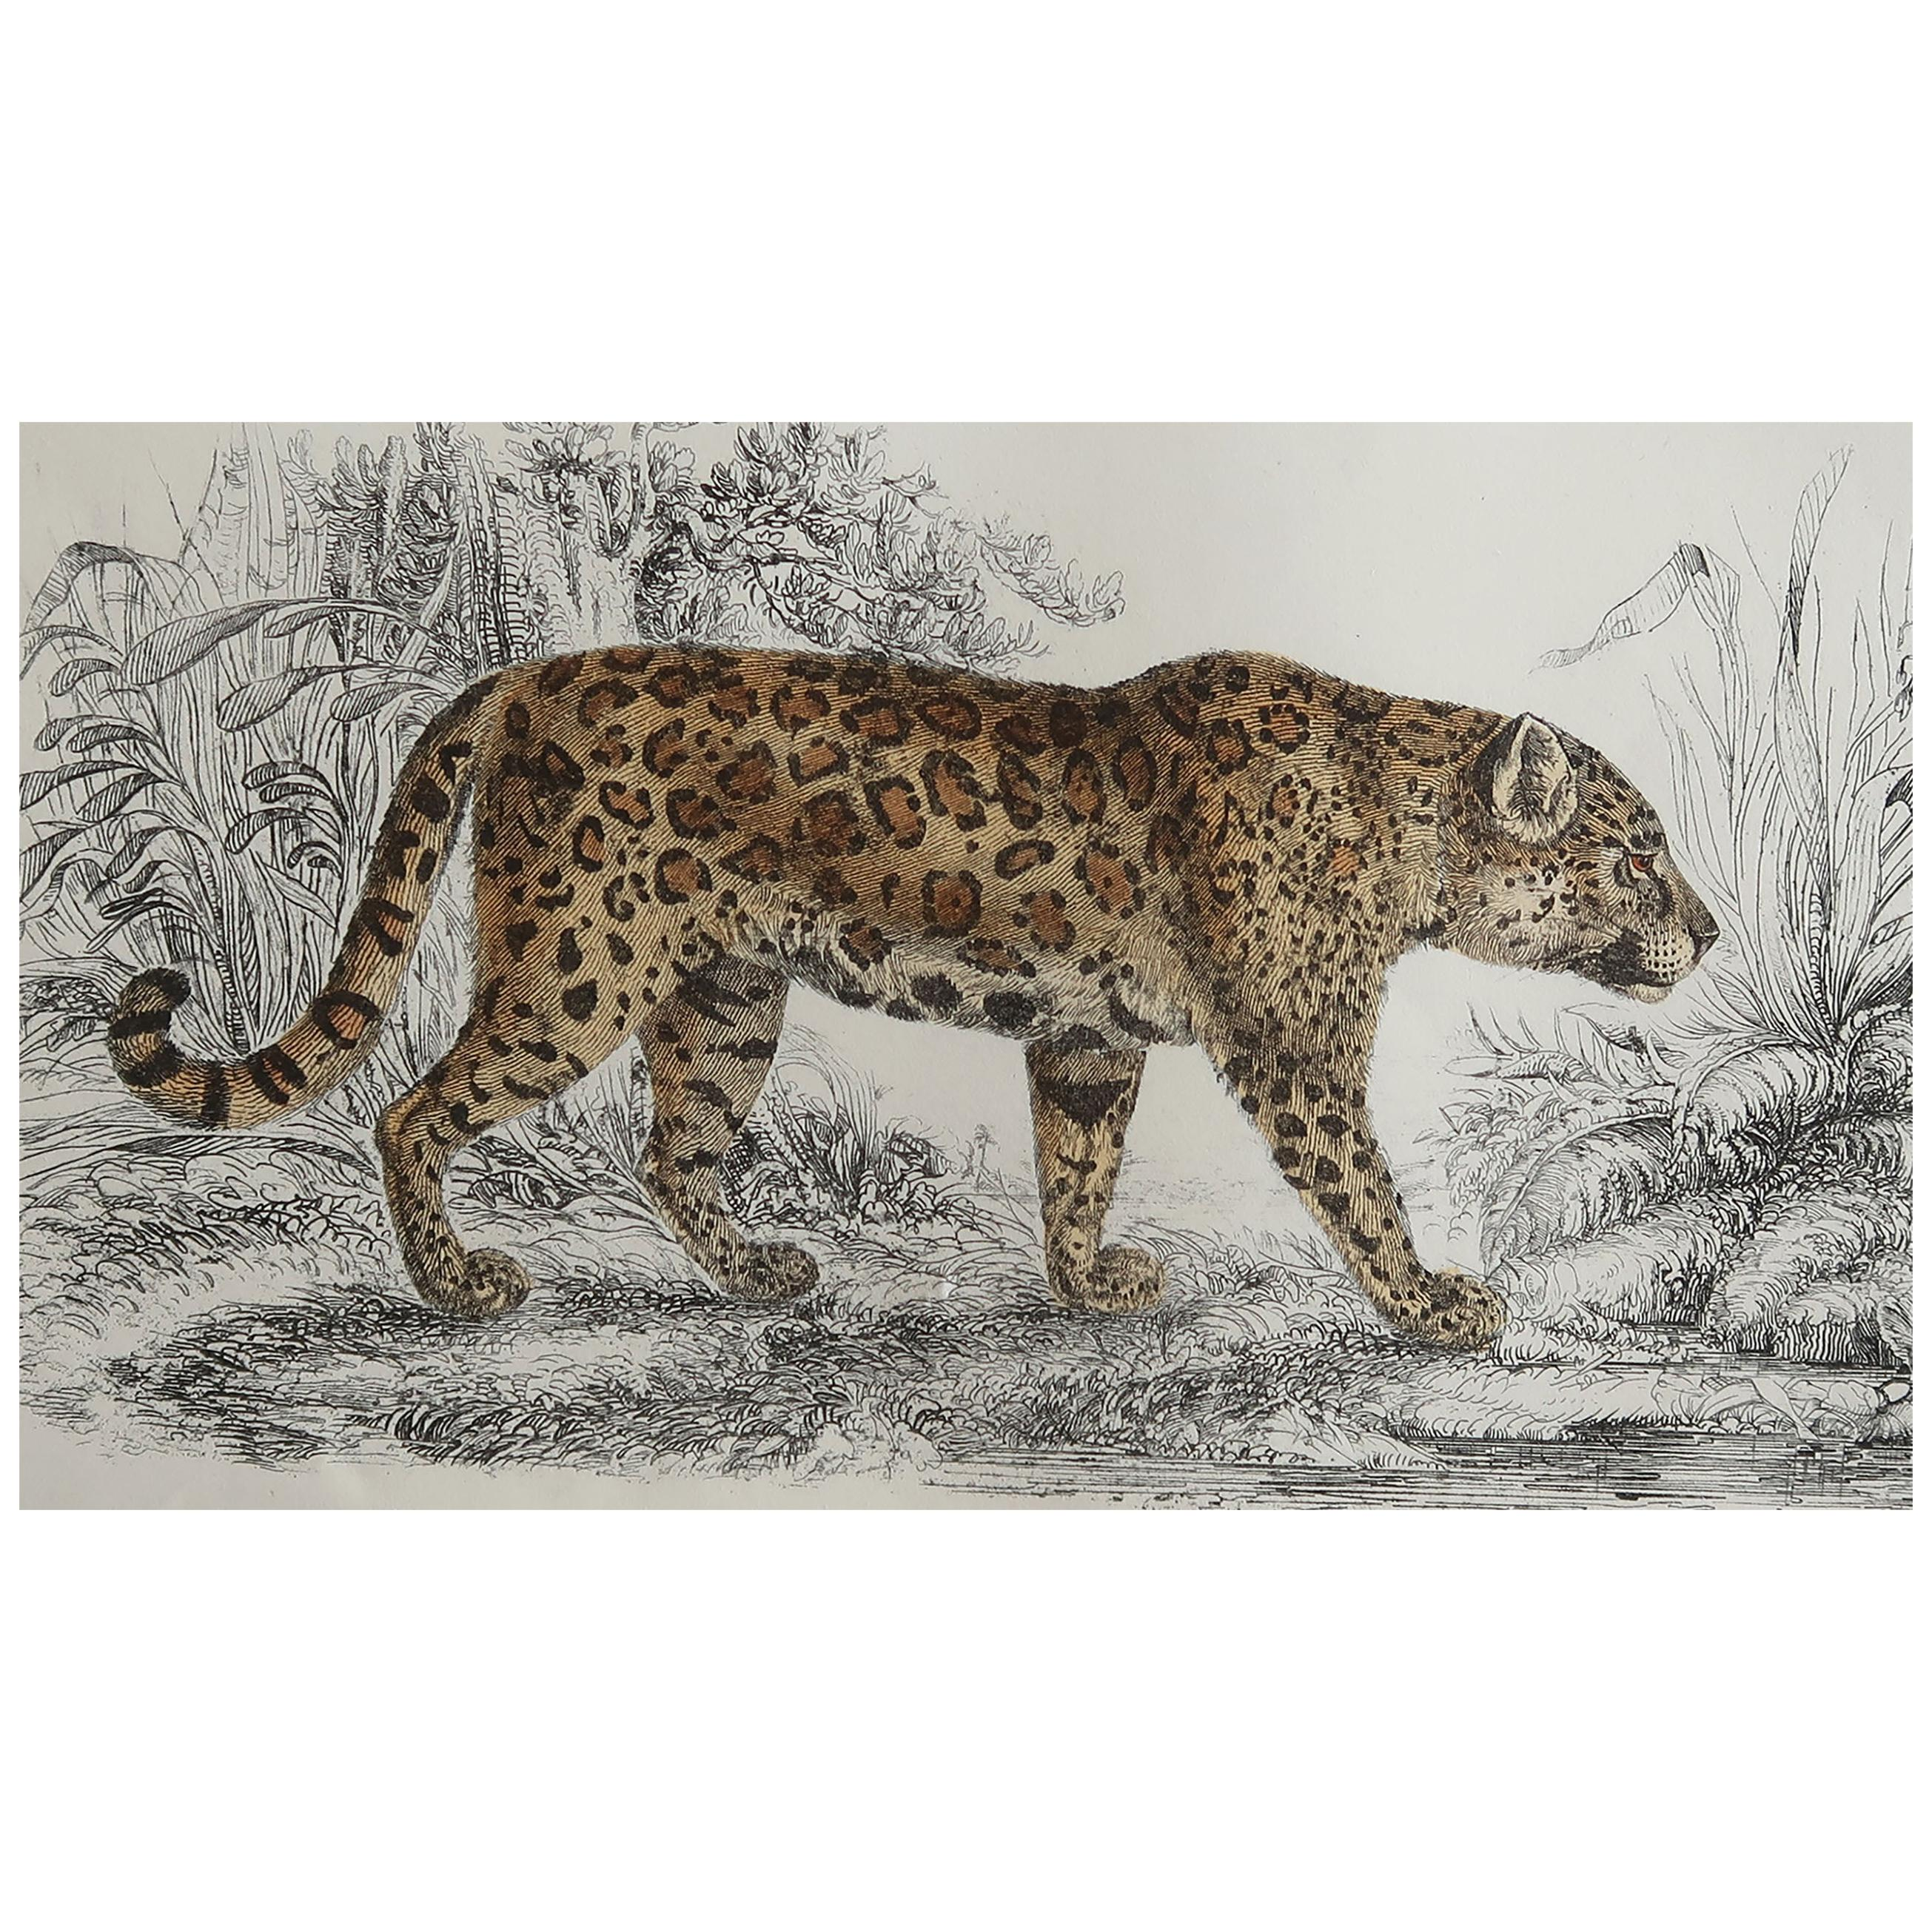 Original Antique Print of a Jaguar, 1847 'Unframed'